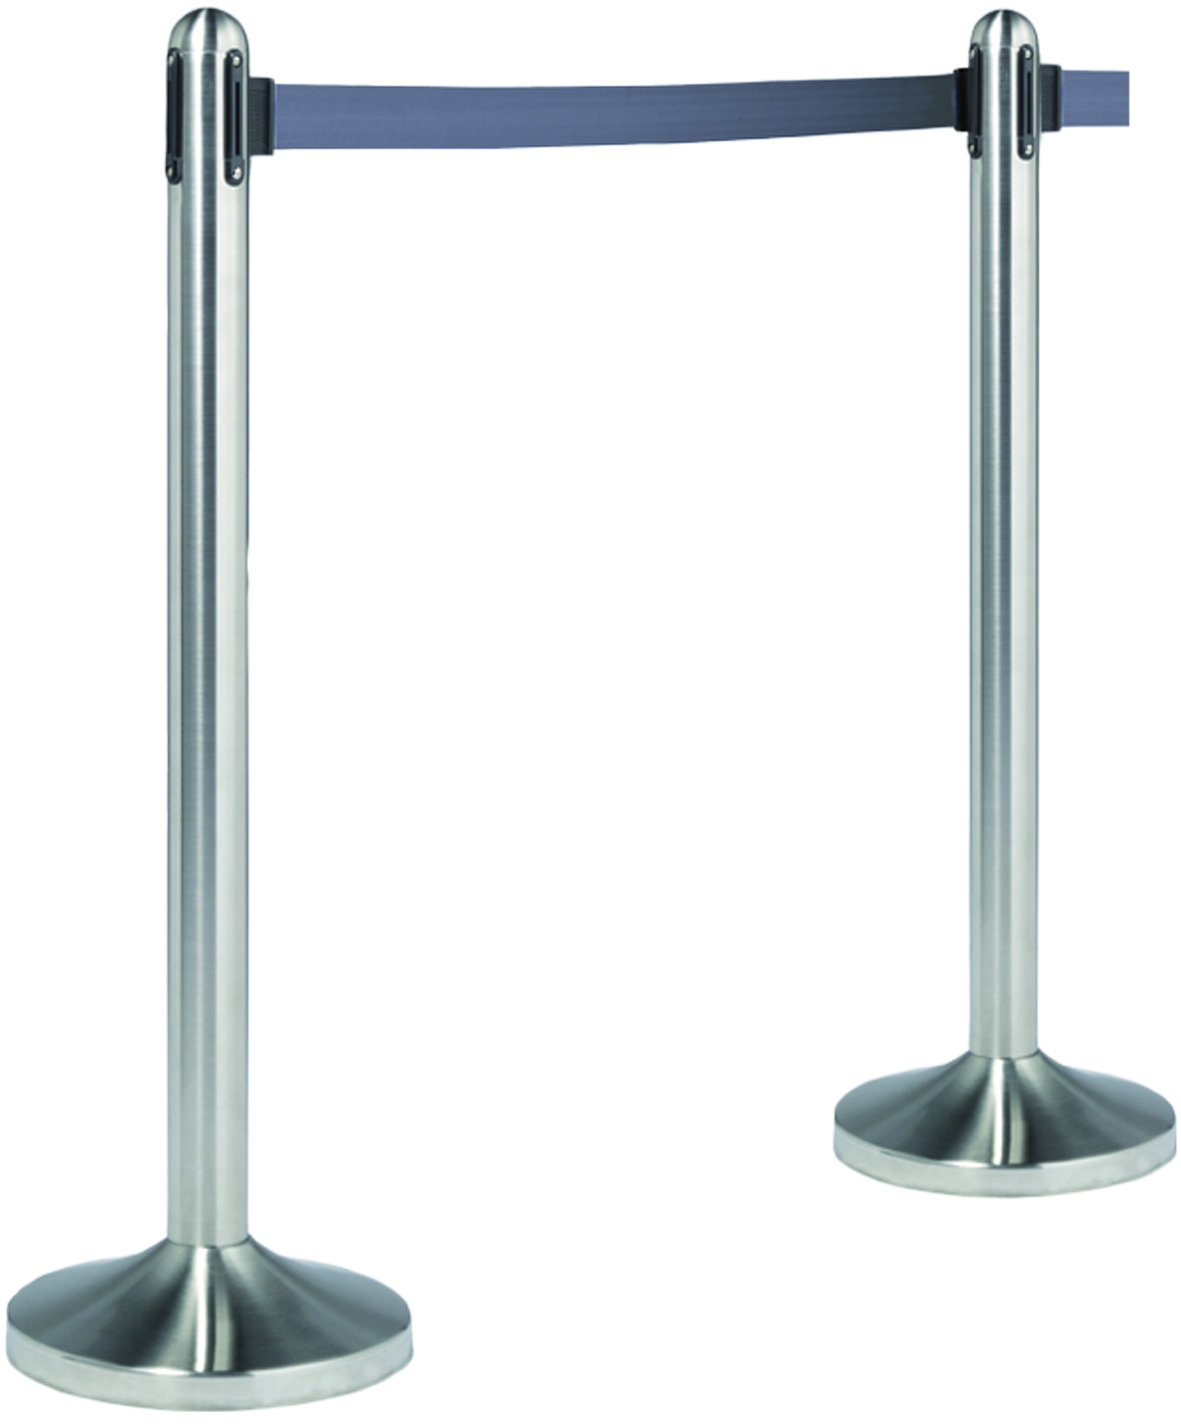 Chrome Stanchion Post with Retractable Belt Black  : Chrome Stanchion Posts with Black Retractable Belts from higgins.ie size 1181 x 1424 jpeg 380kB